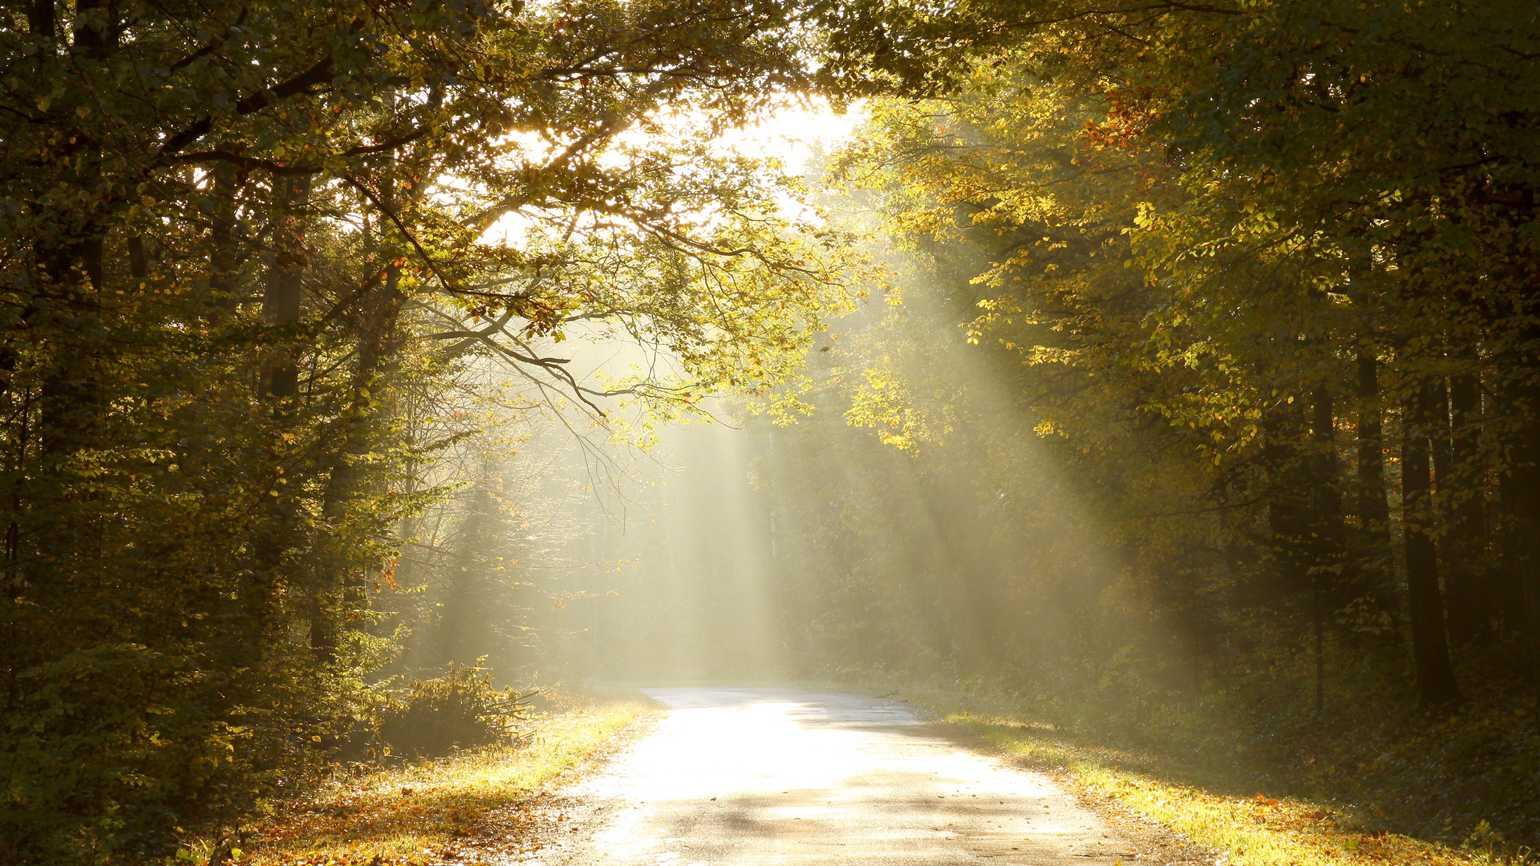 Country road through autumn woods at dawn.